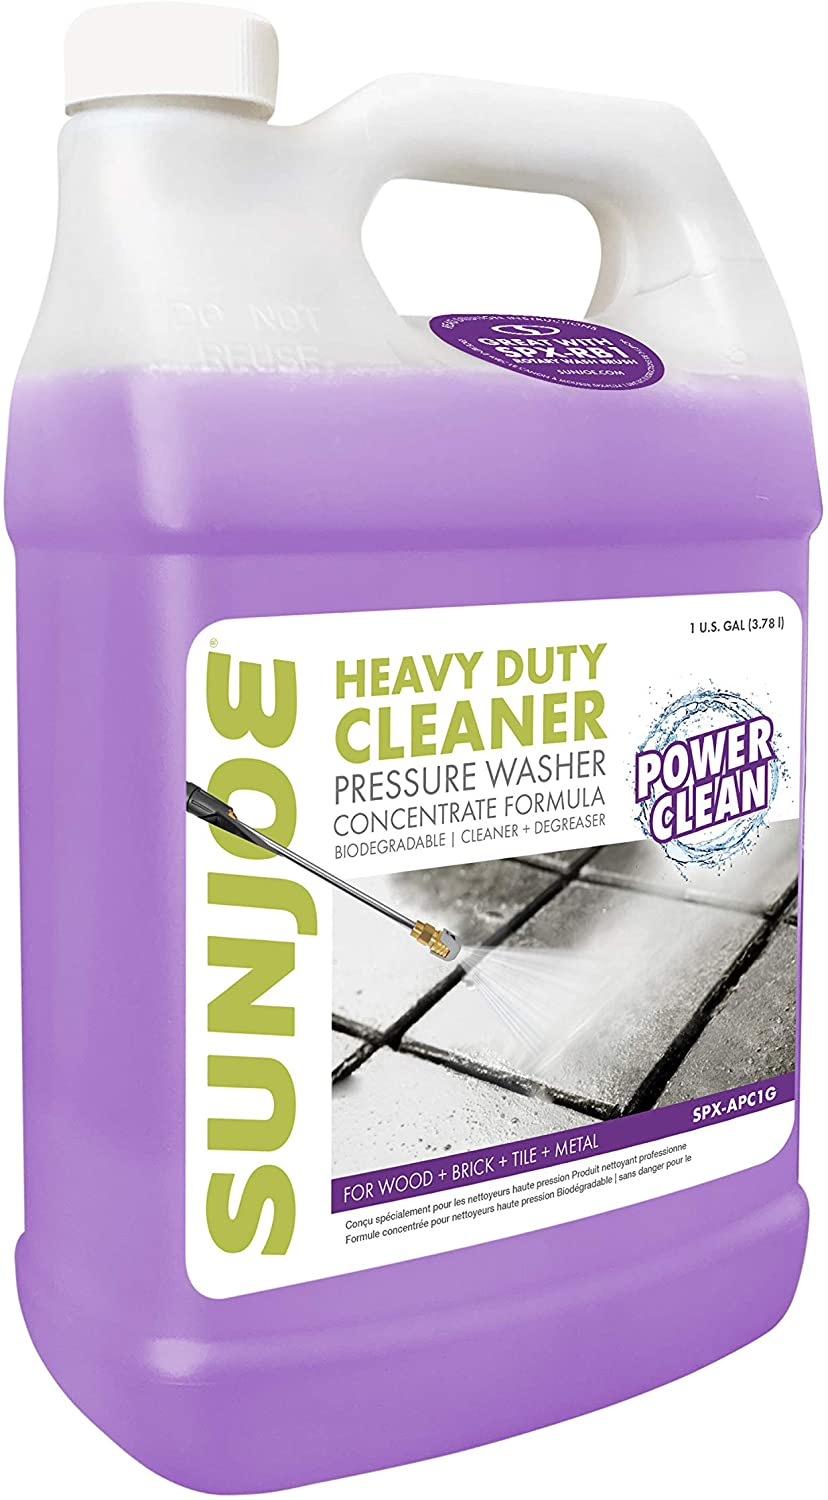 Sun Joe SPX-APC1G All-Purpose Heavy Duty Pressure Washer Rated Cleaner